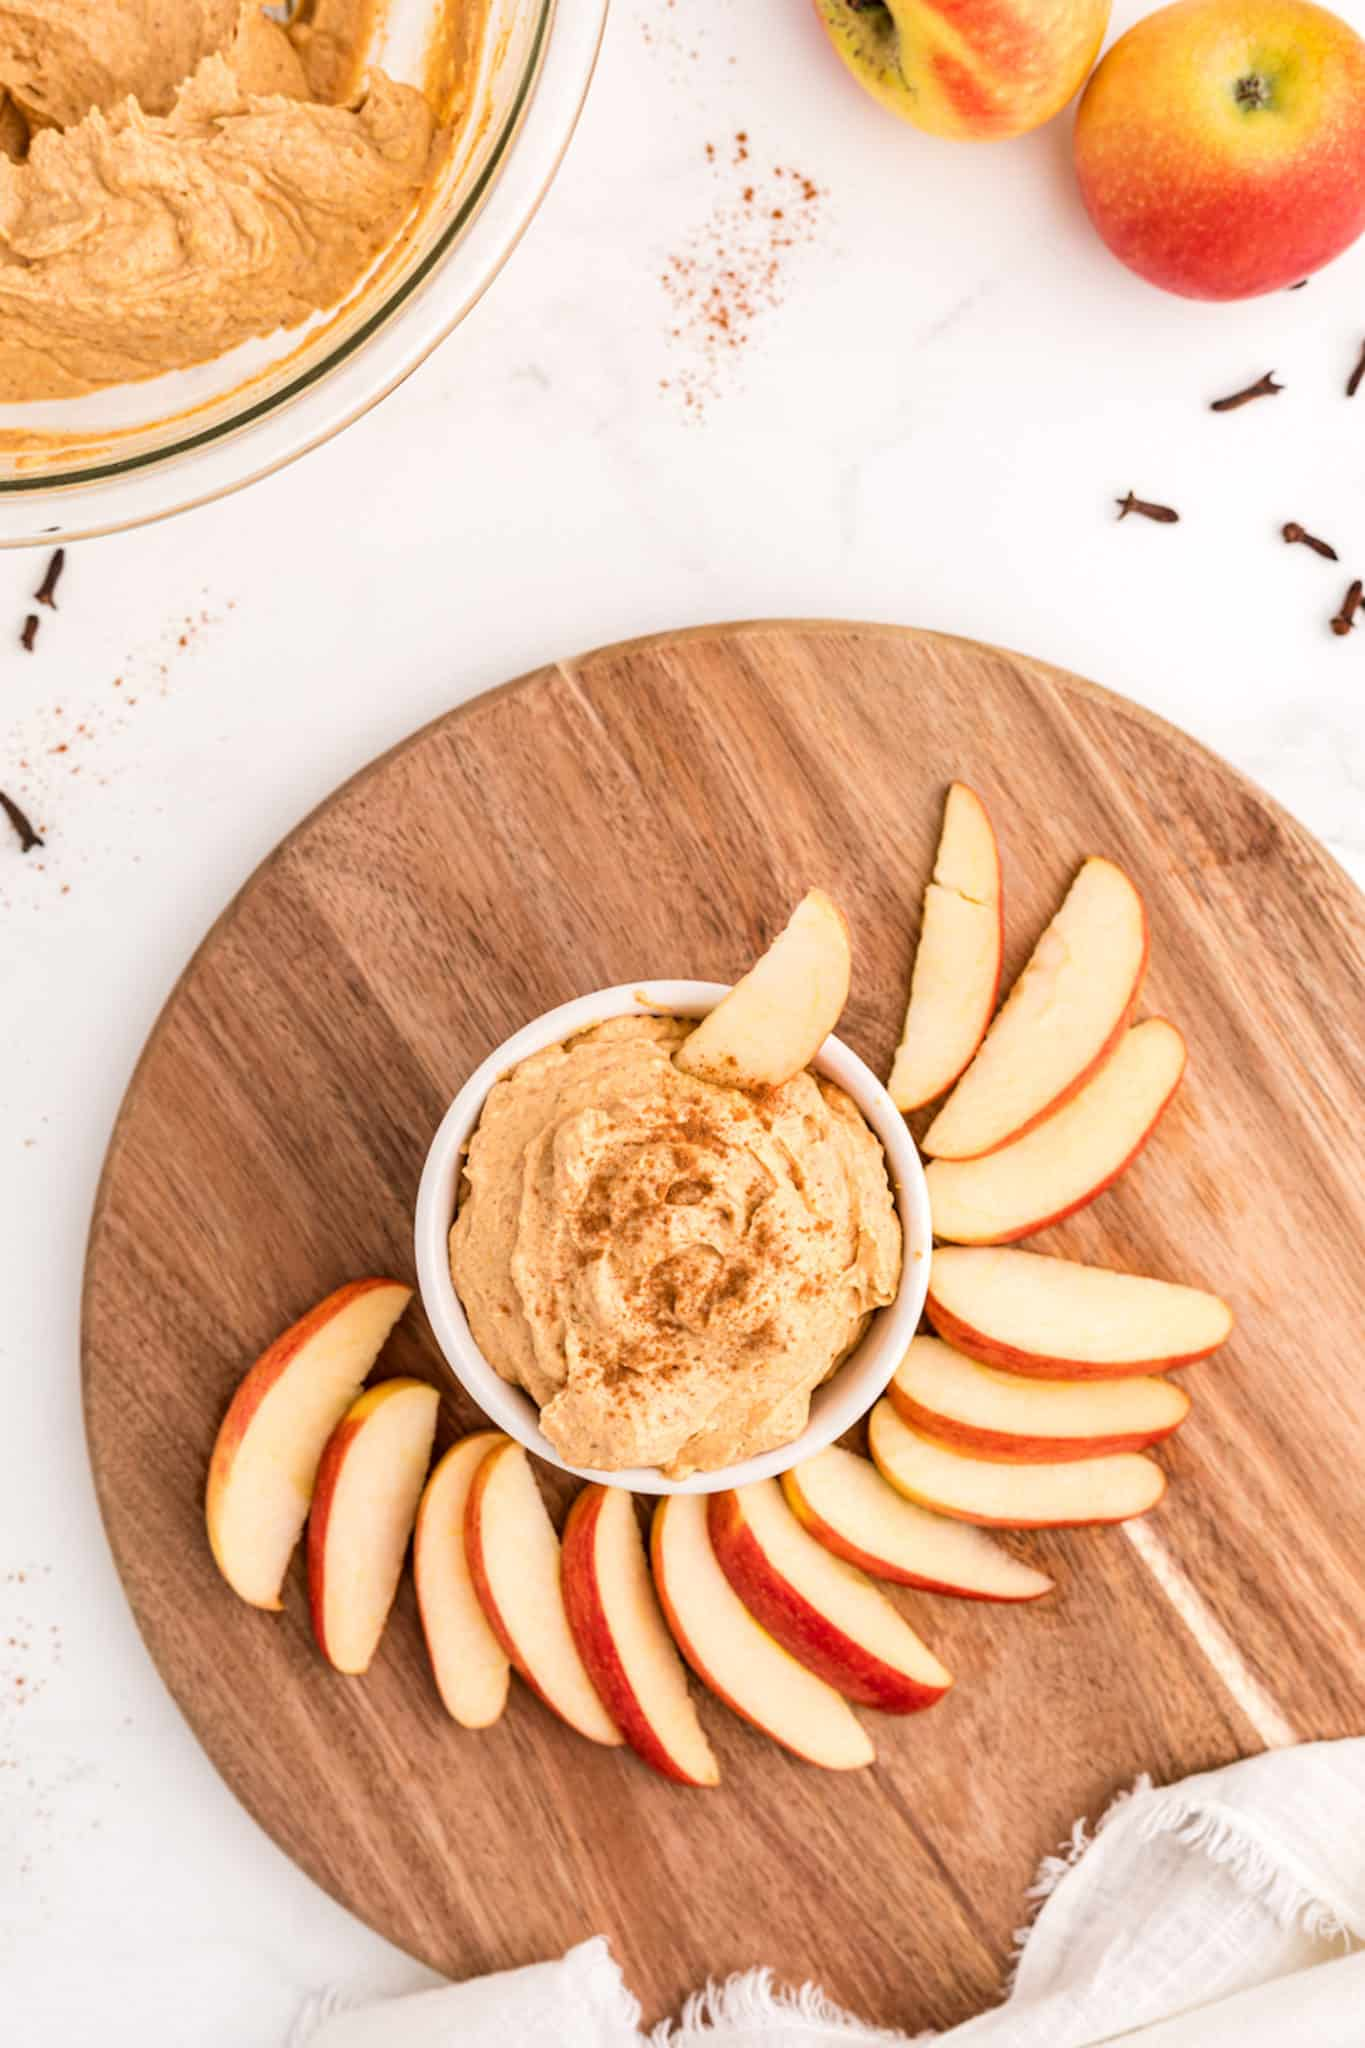 dip with apples on table